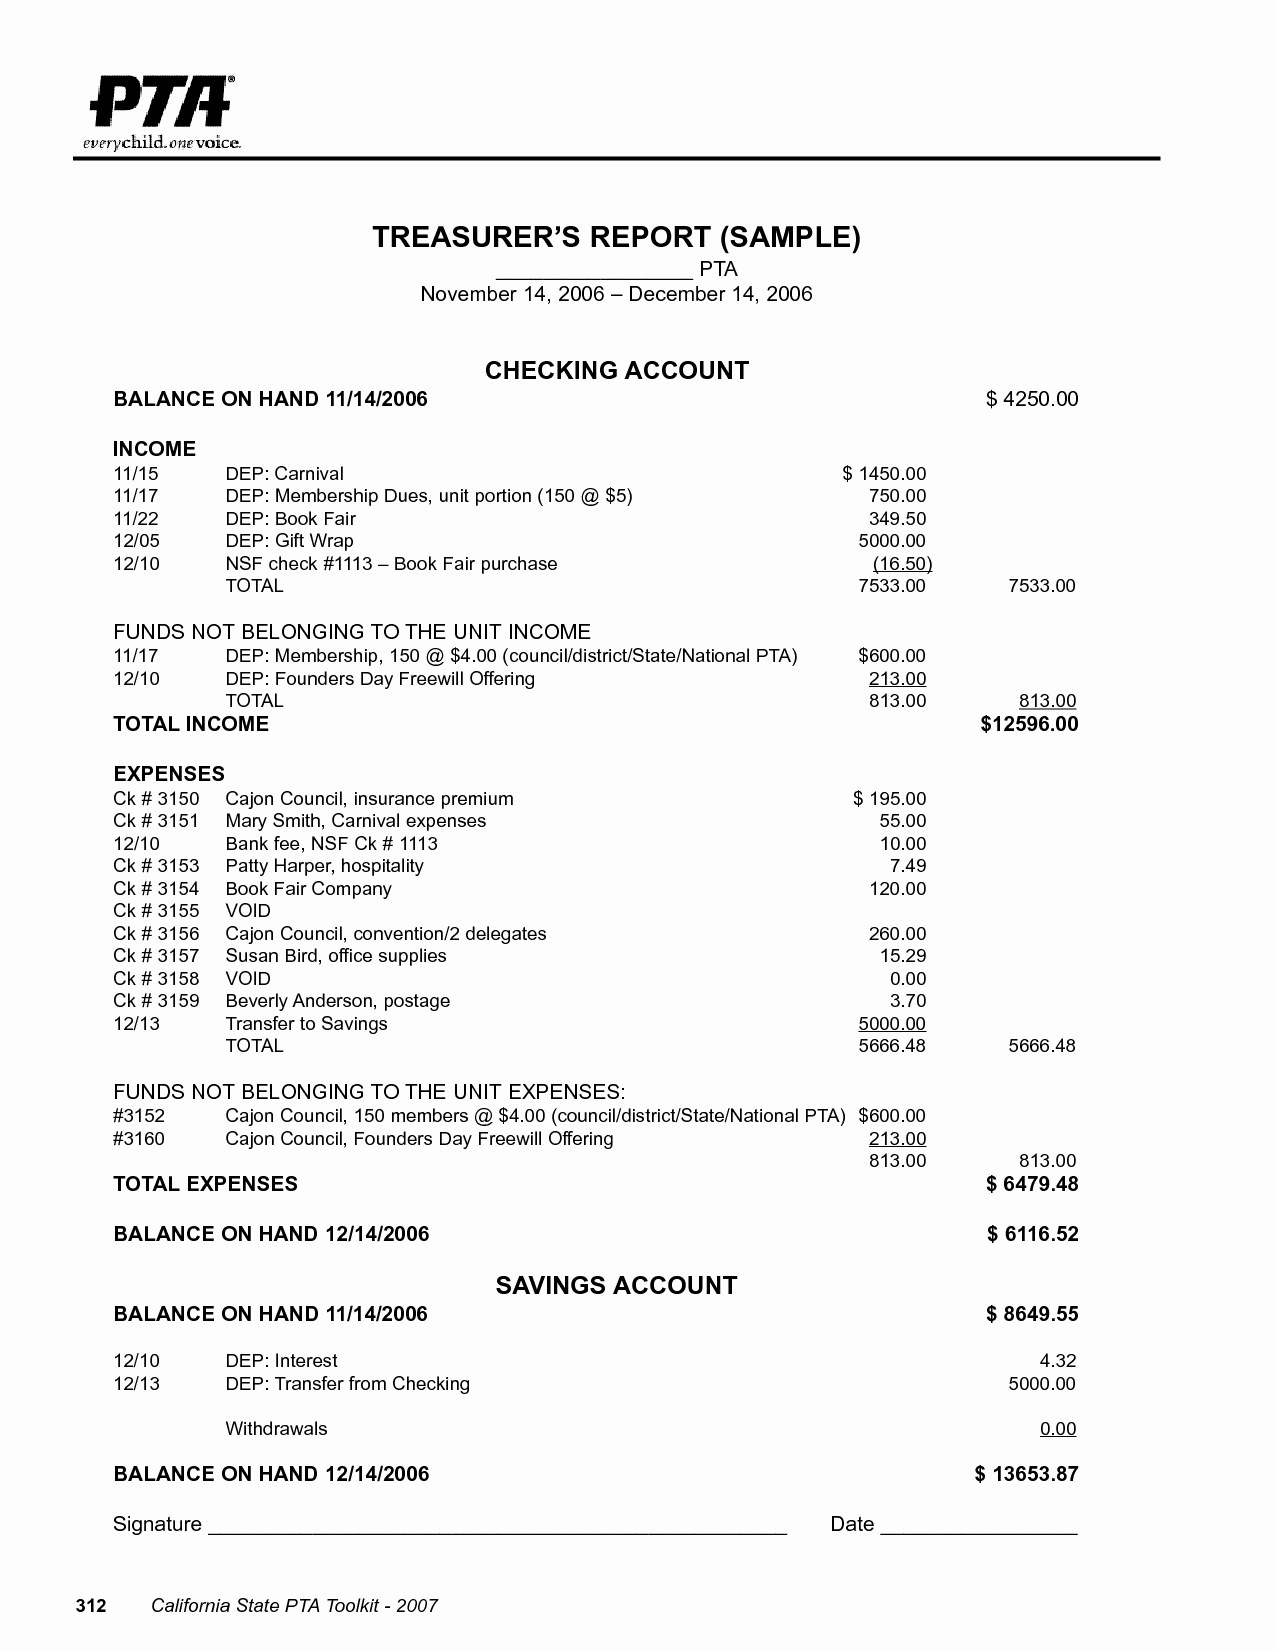 Non Profit Treasurer Report Template New the Treasurer's Report